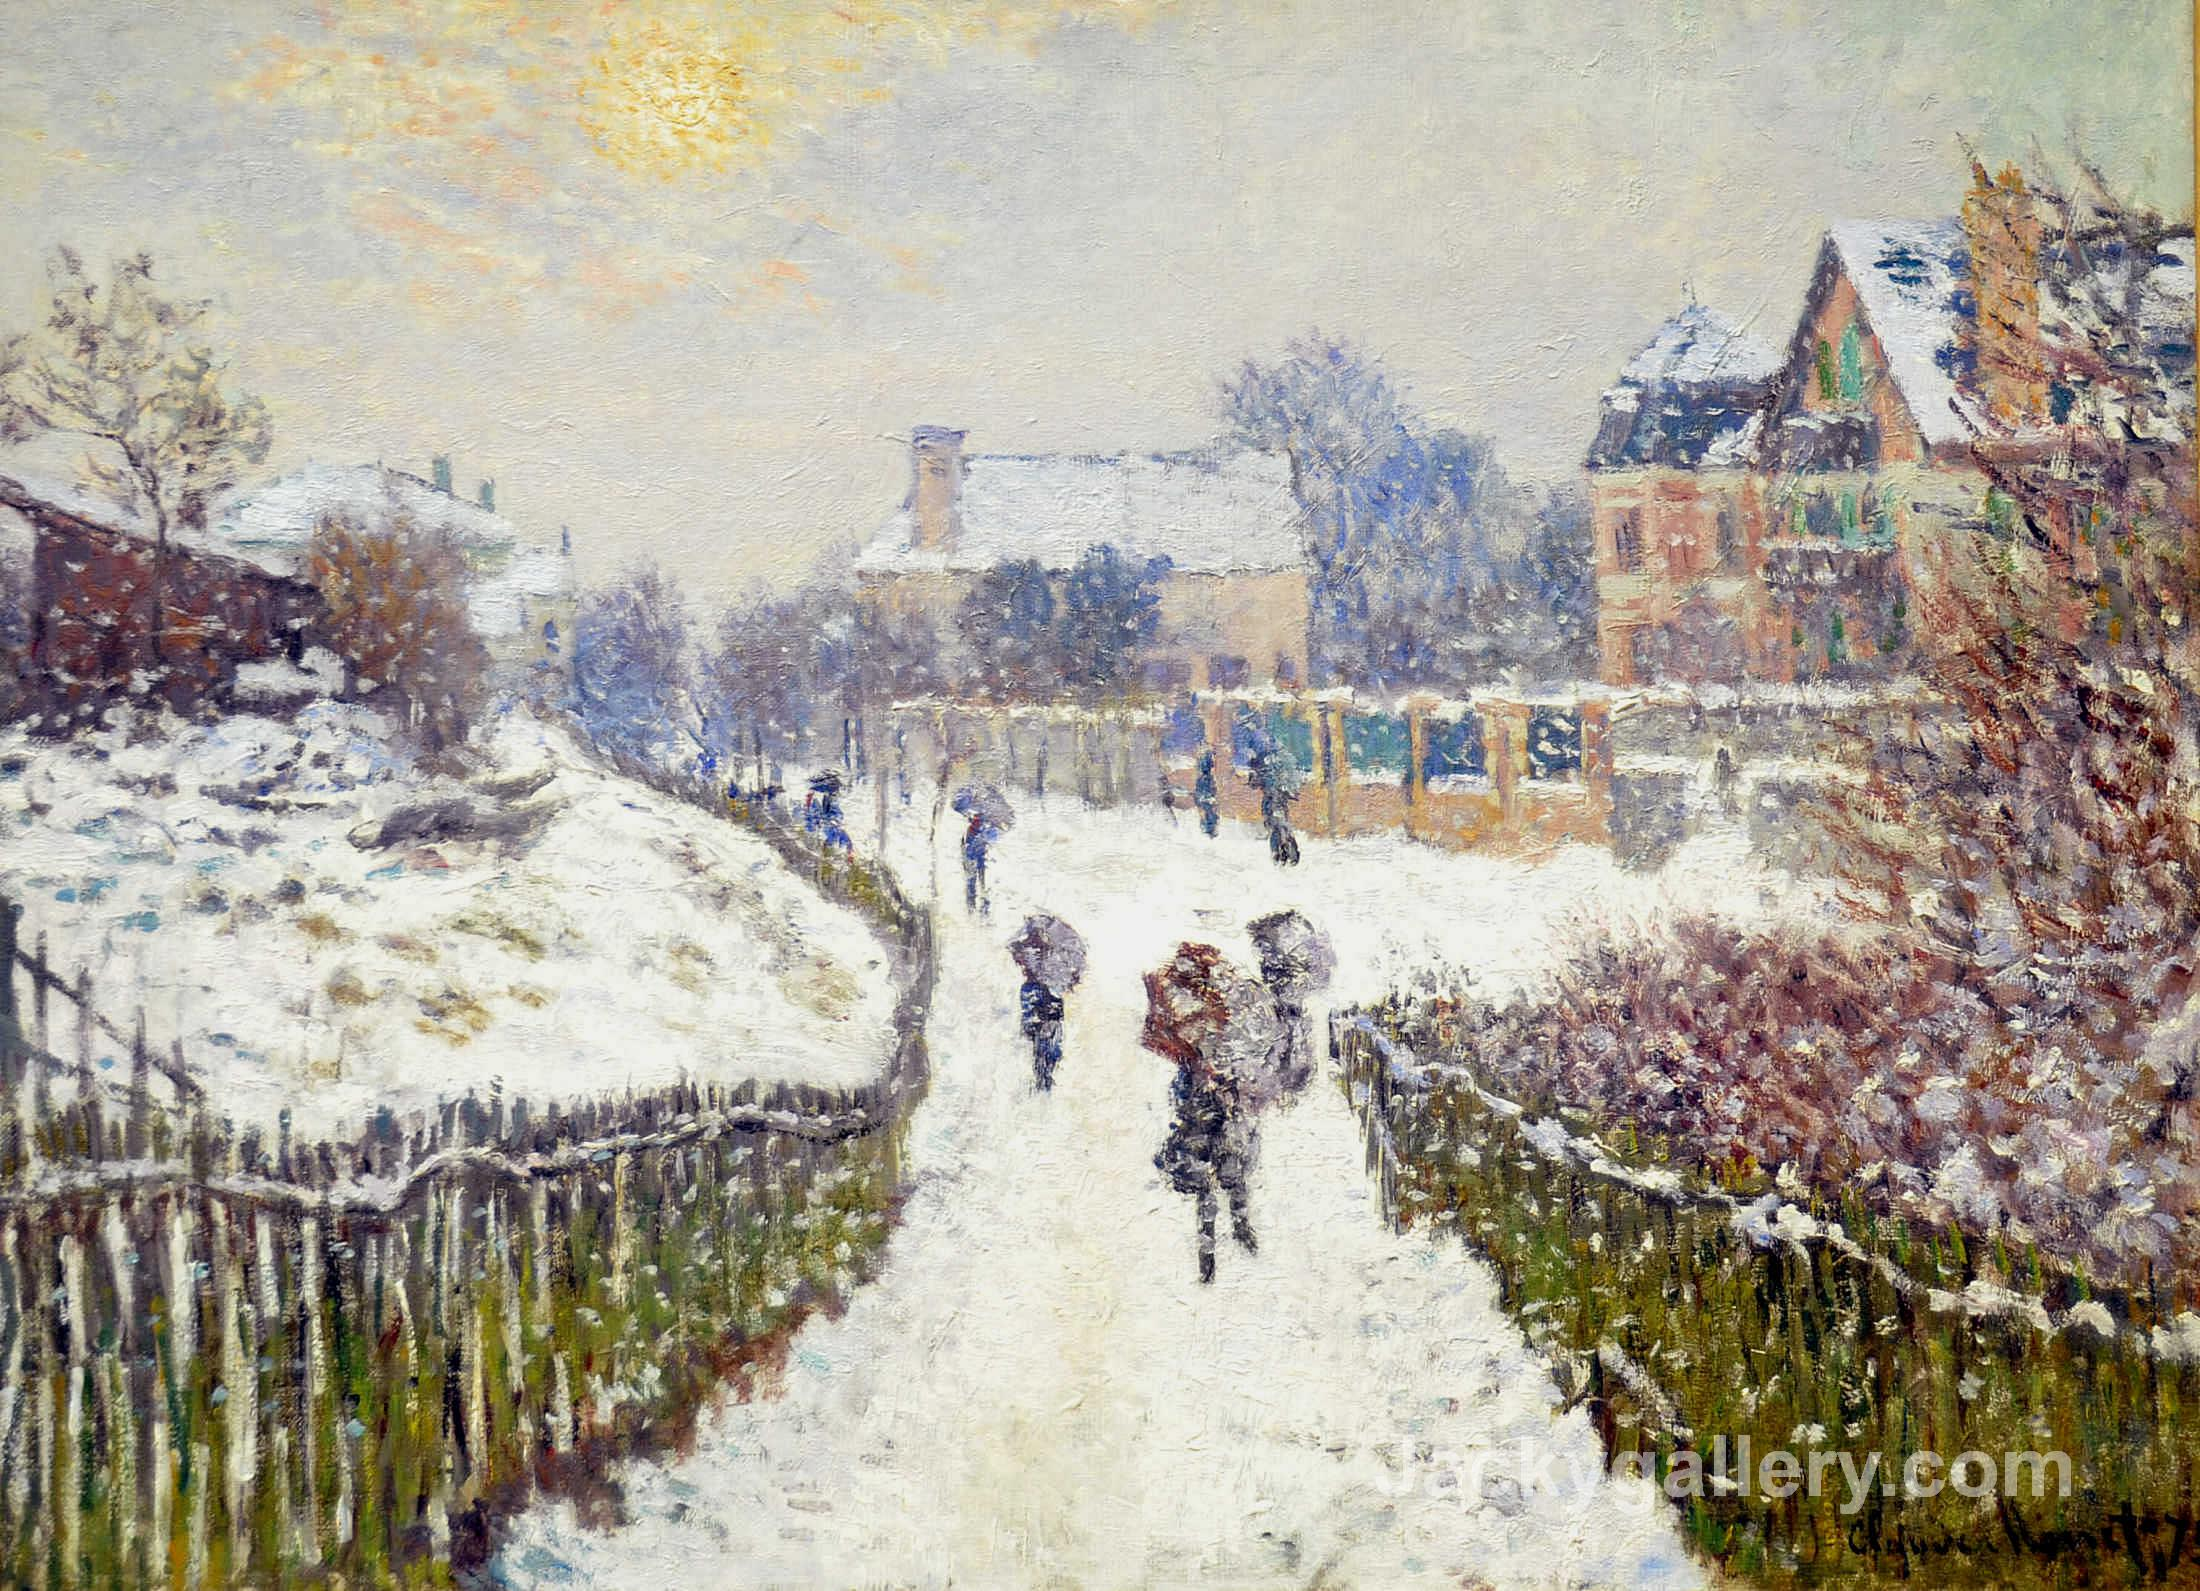 Boulevard Saint-Denis, Argenteuil, in Winter by Claude Monet paintings reproduction